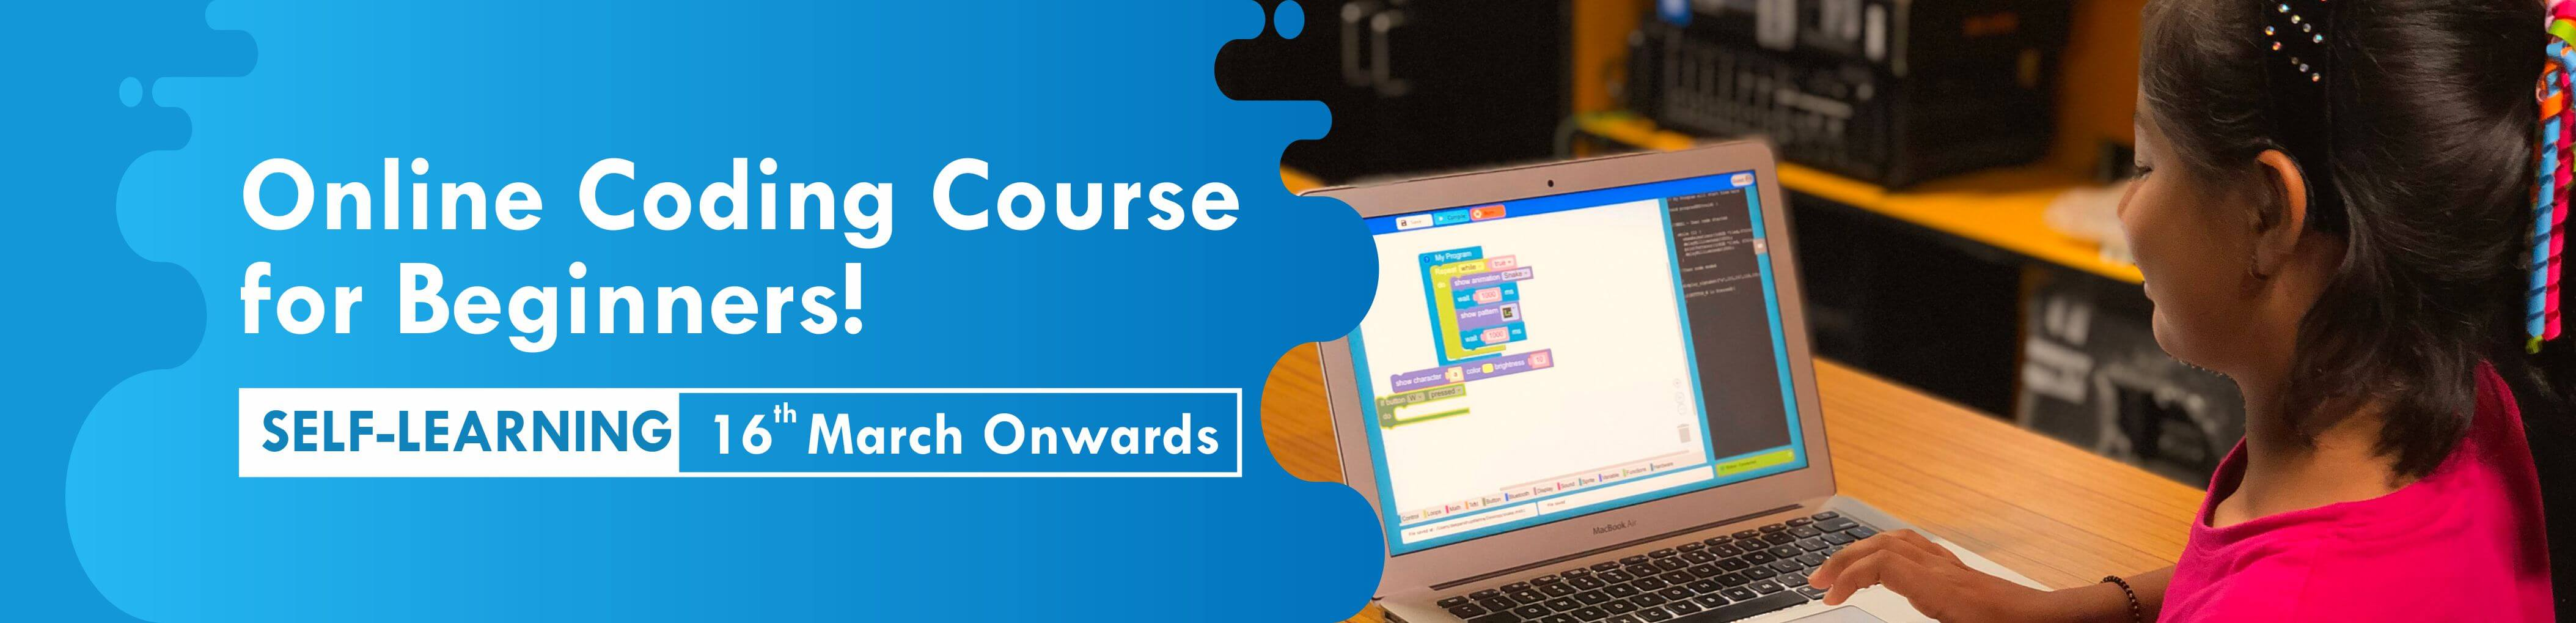 Online Coding Course for Beginners (Self Learning) banner